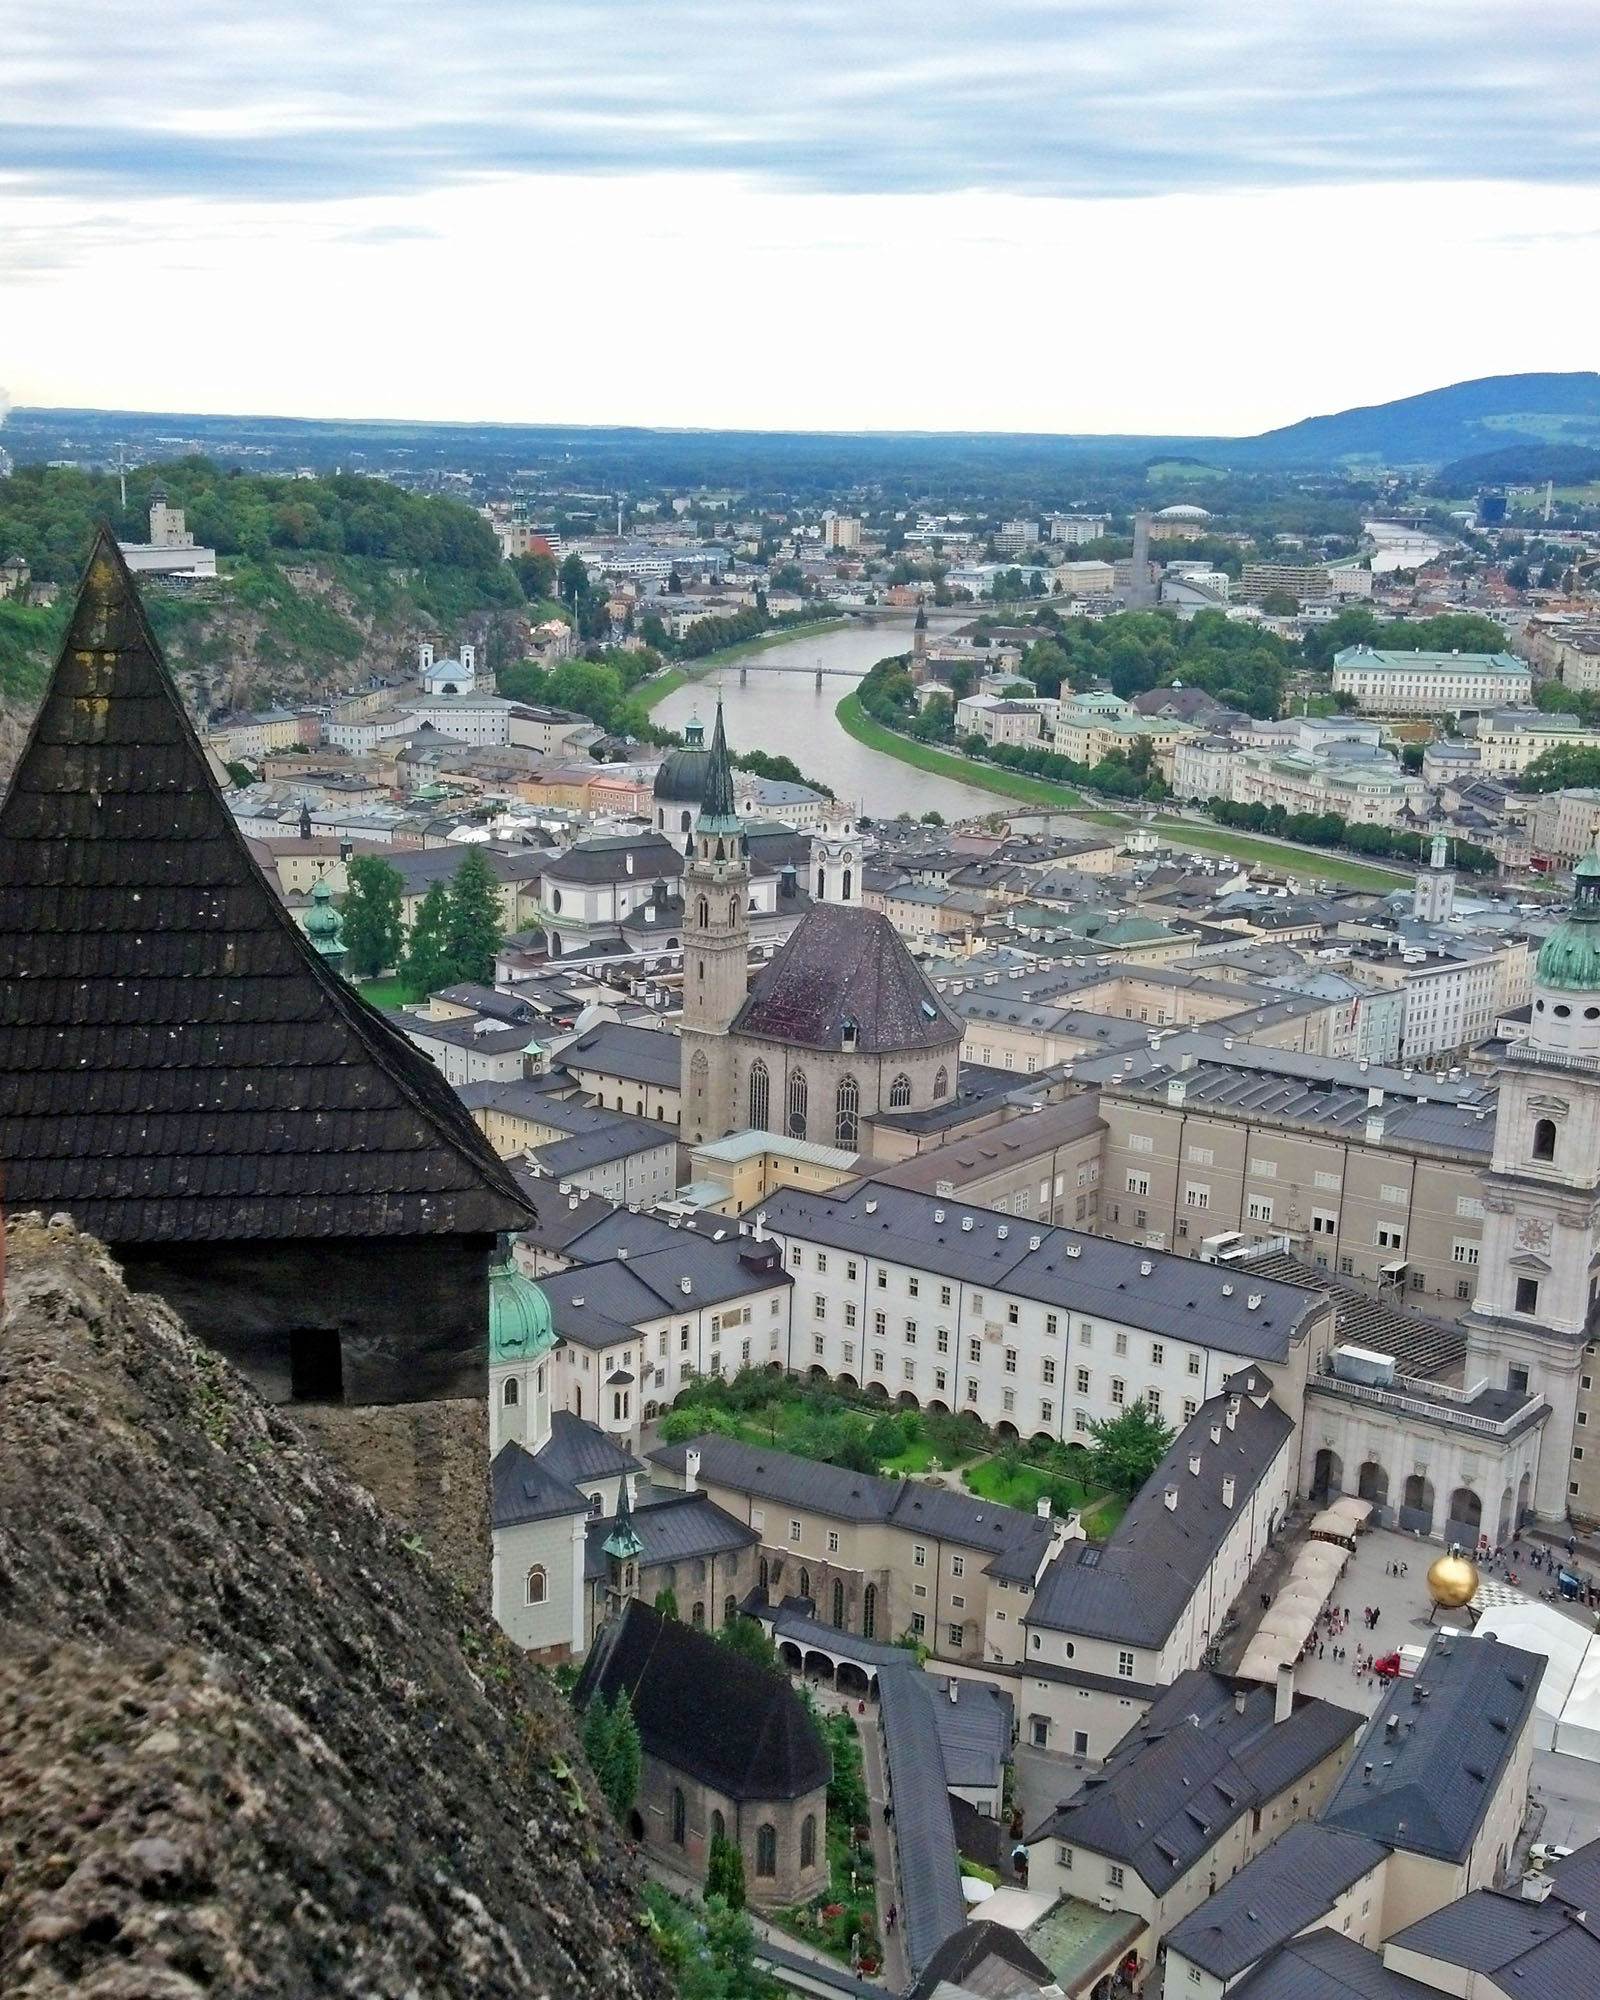 A view from the fortress tower.